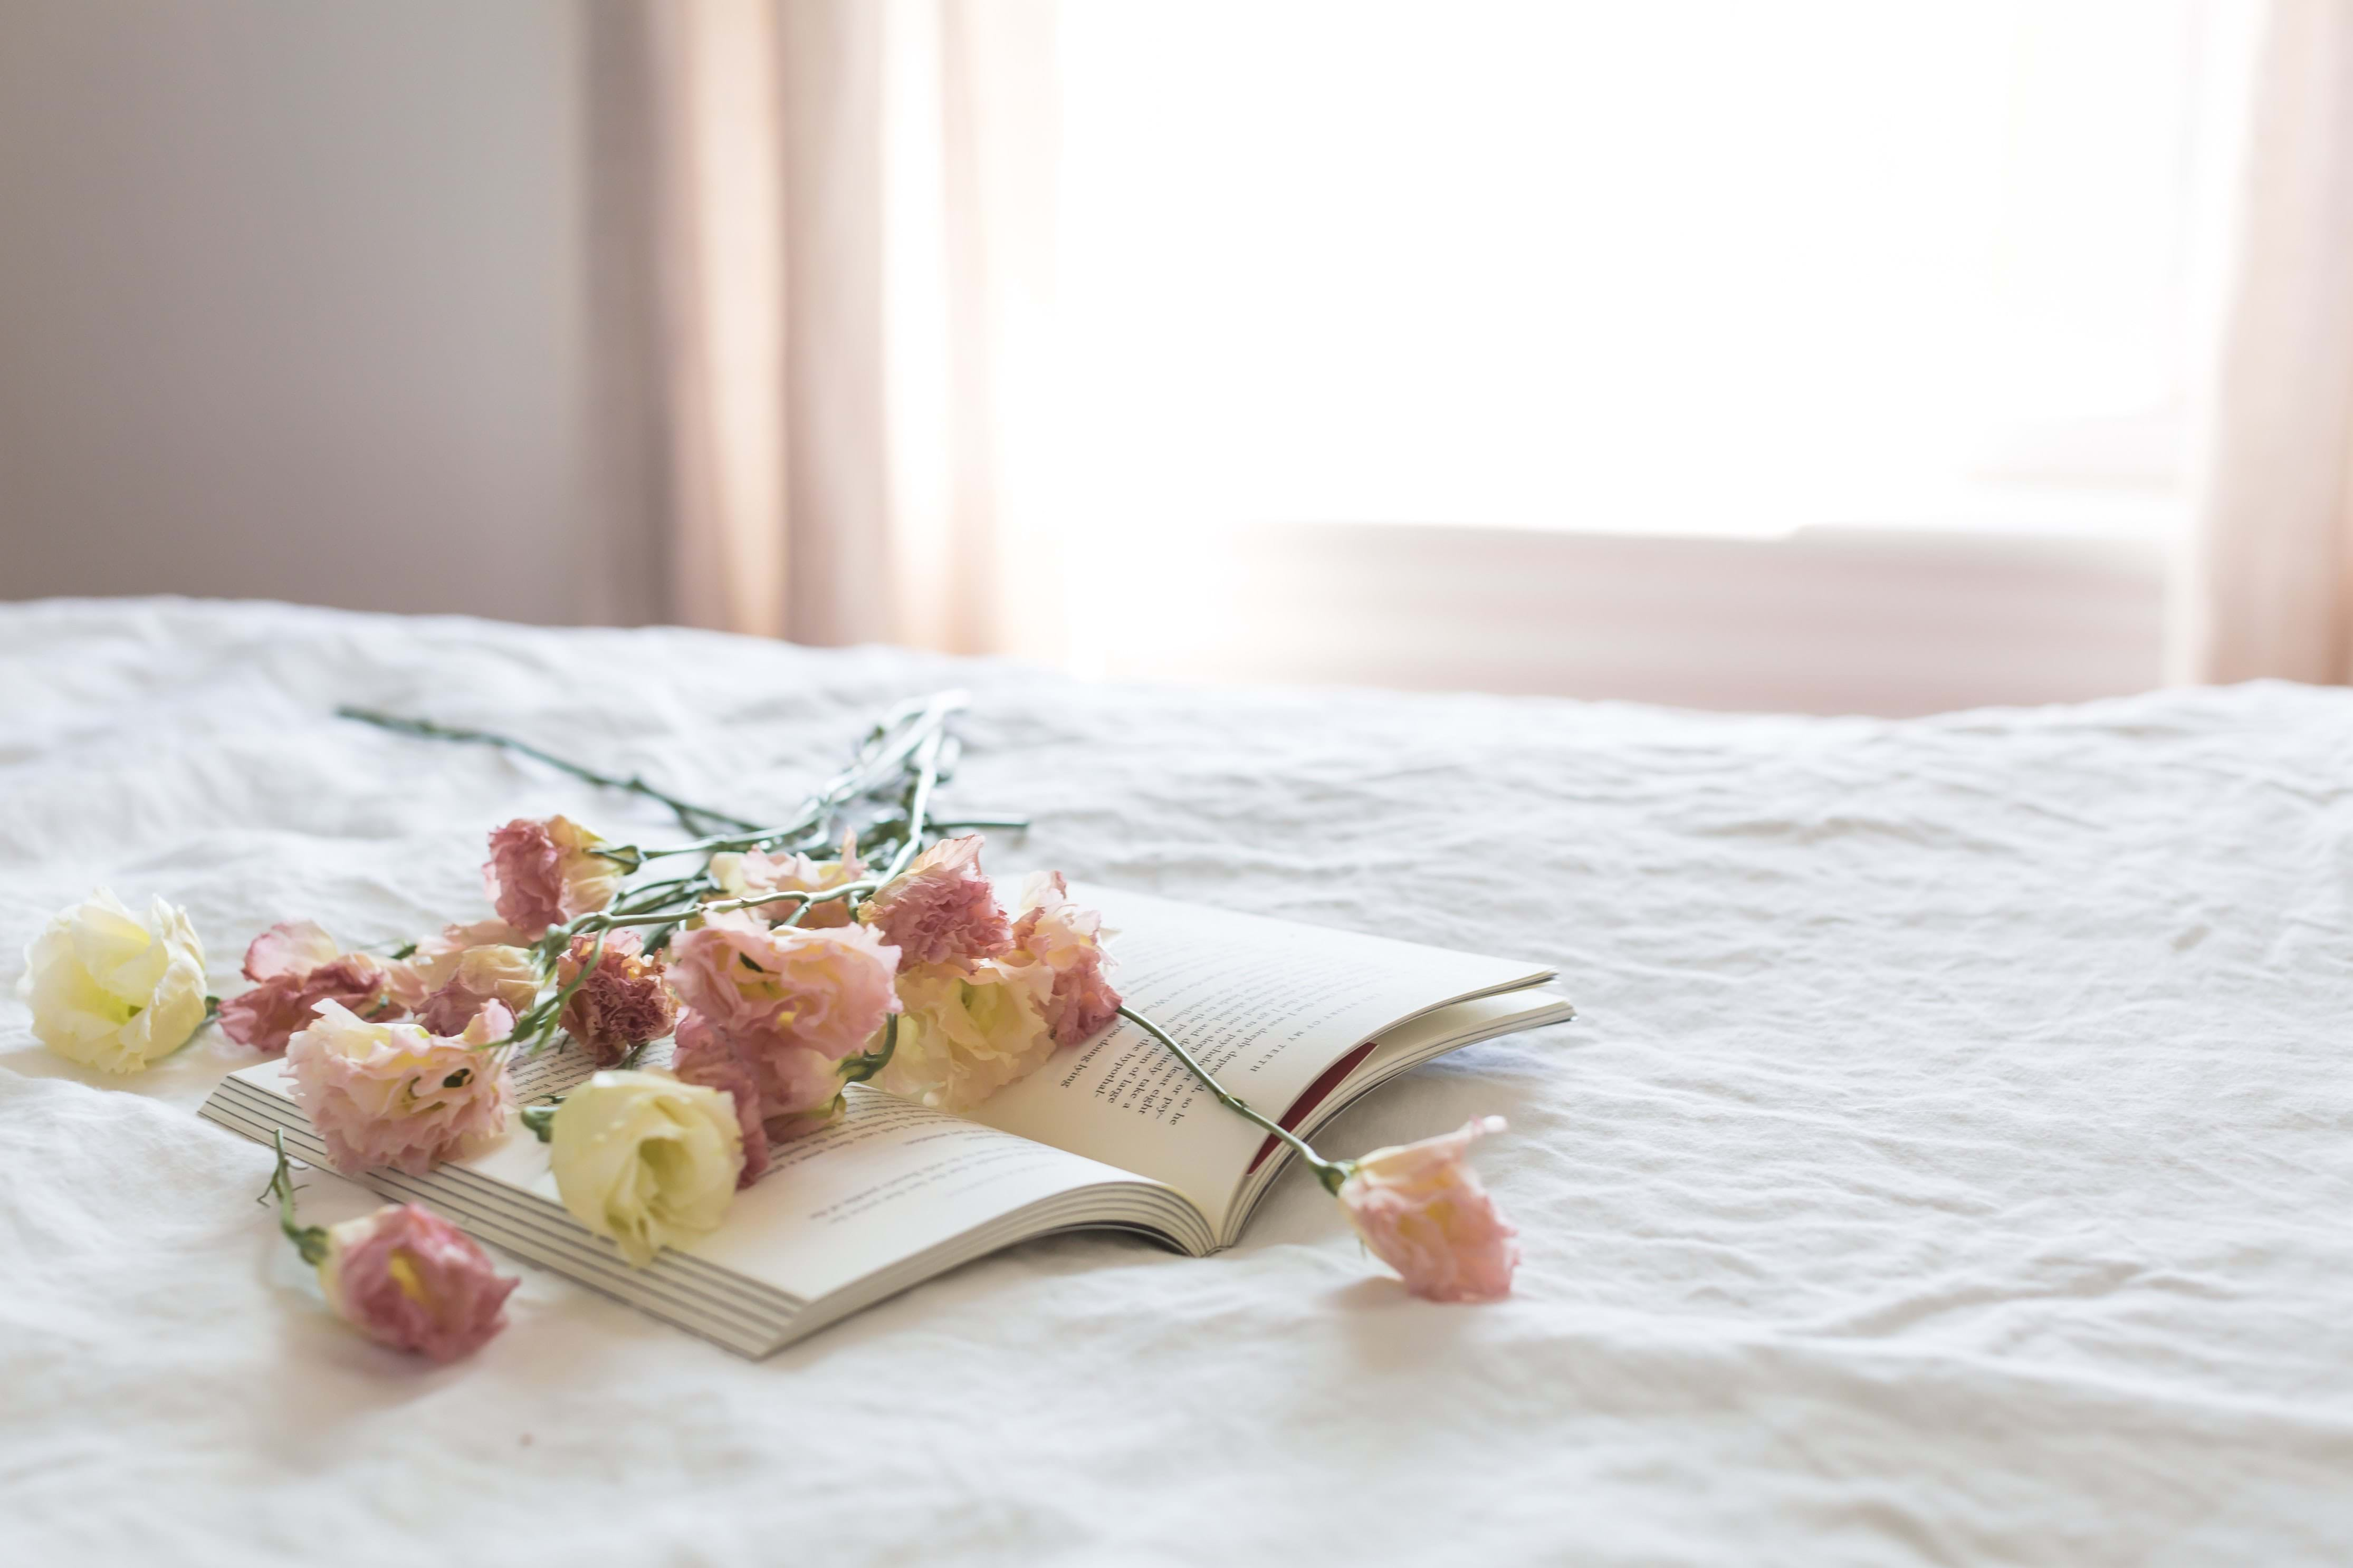 Flowers laying on a book in a bedroom